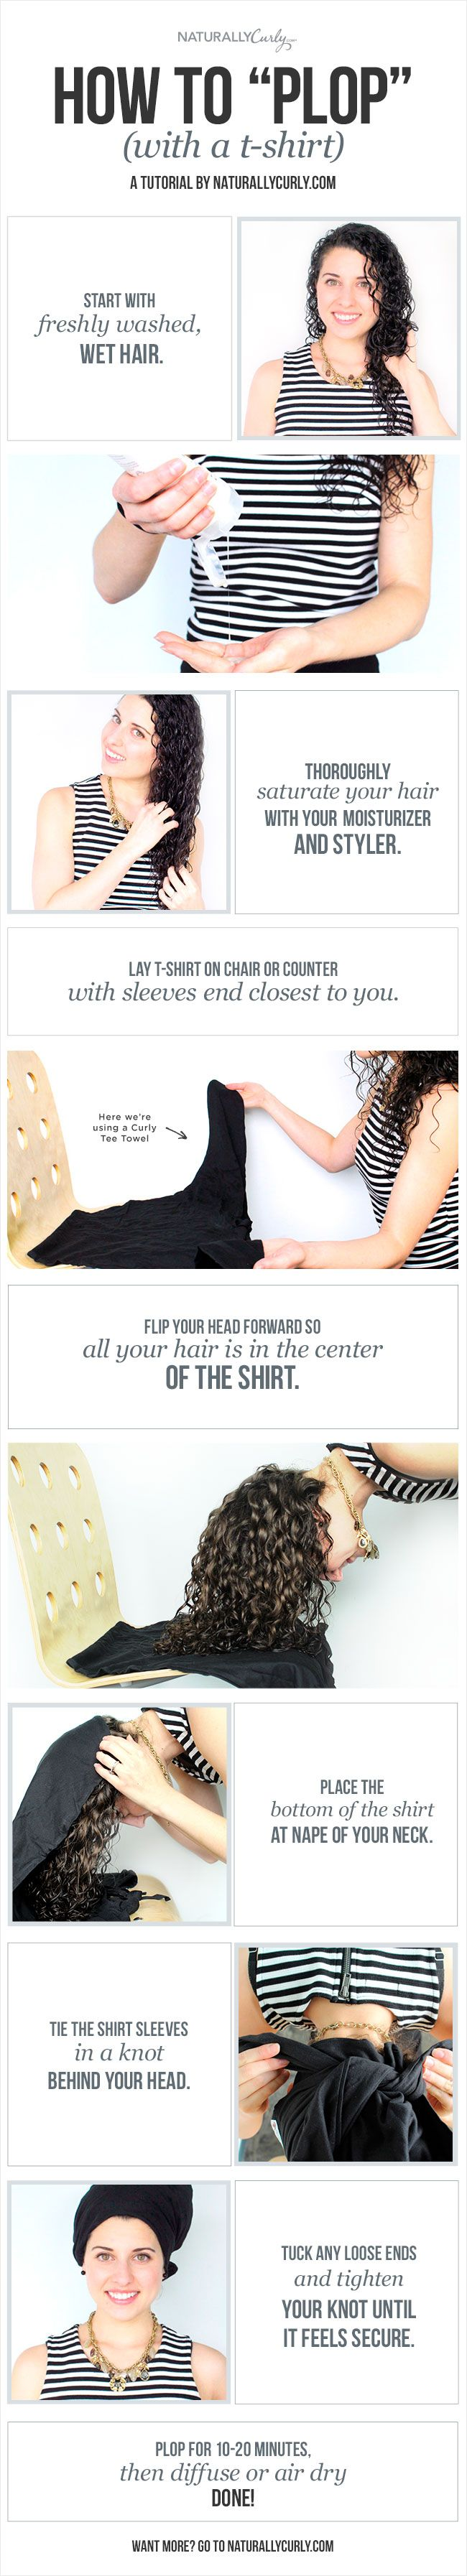 The Curly Girl's Guide to Plopping Your Hair https://www.naturallycurly.com/curlreading/curl-products/to-plop-or-not-to-plop/